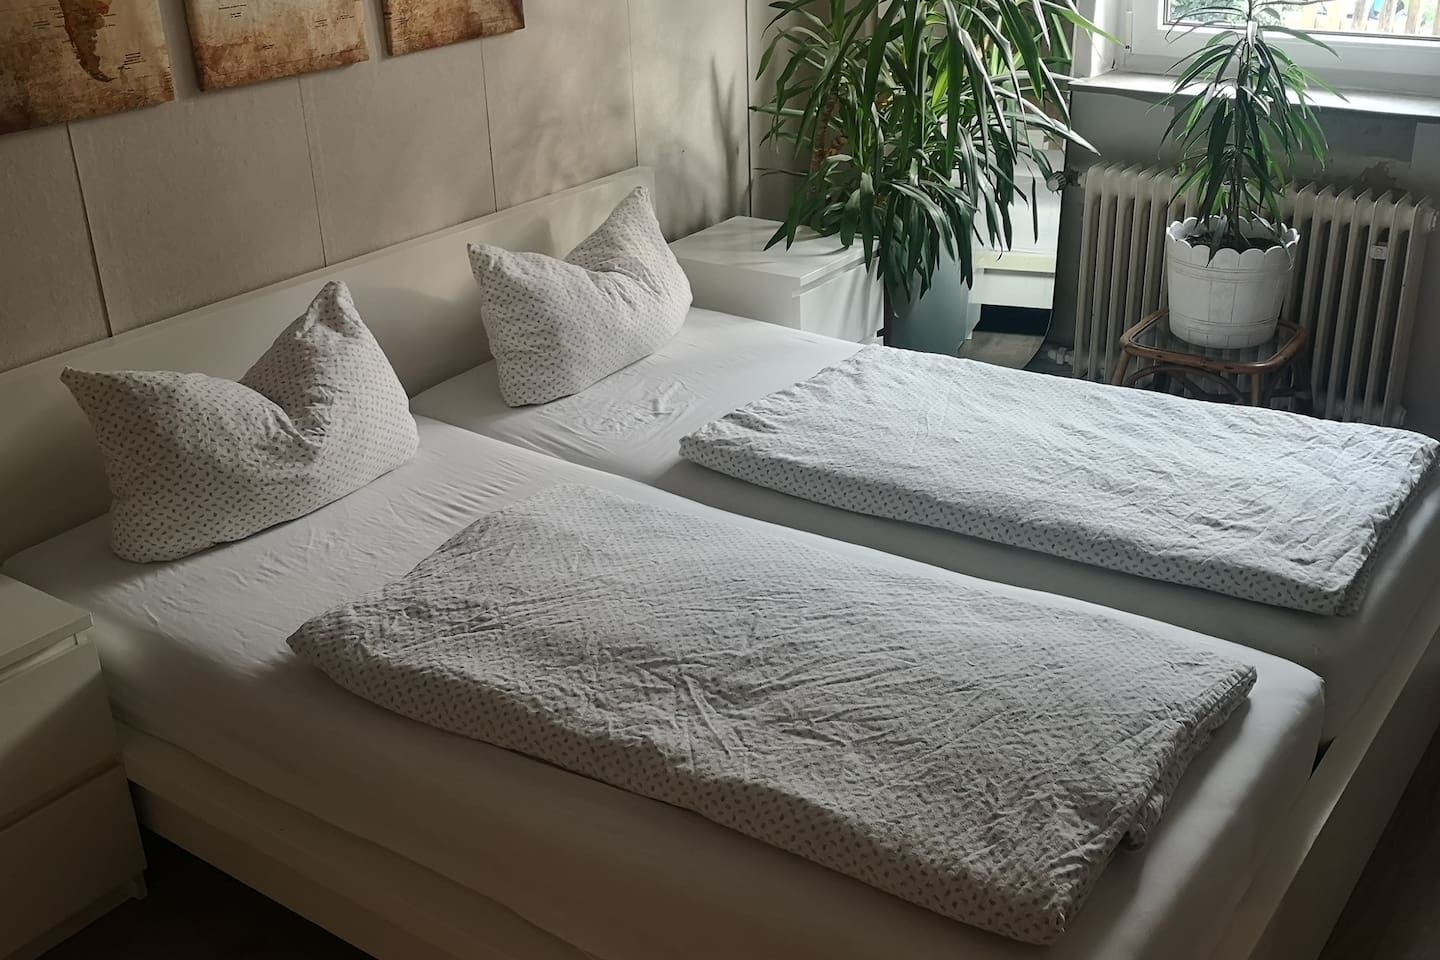 Living-Sleeping room with a 180x200cm bed with very comfortable mattresses